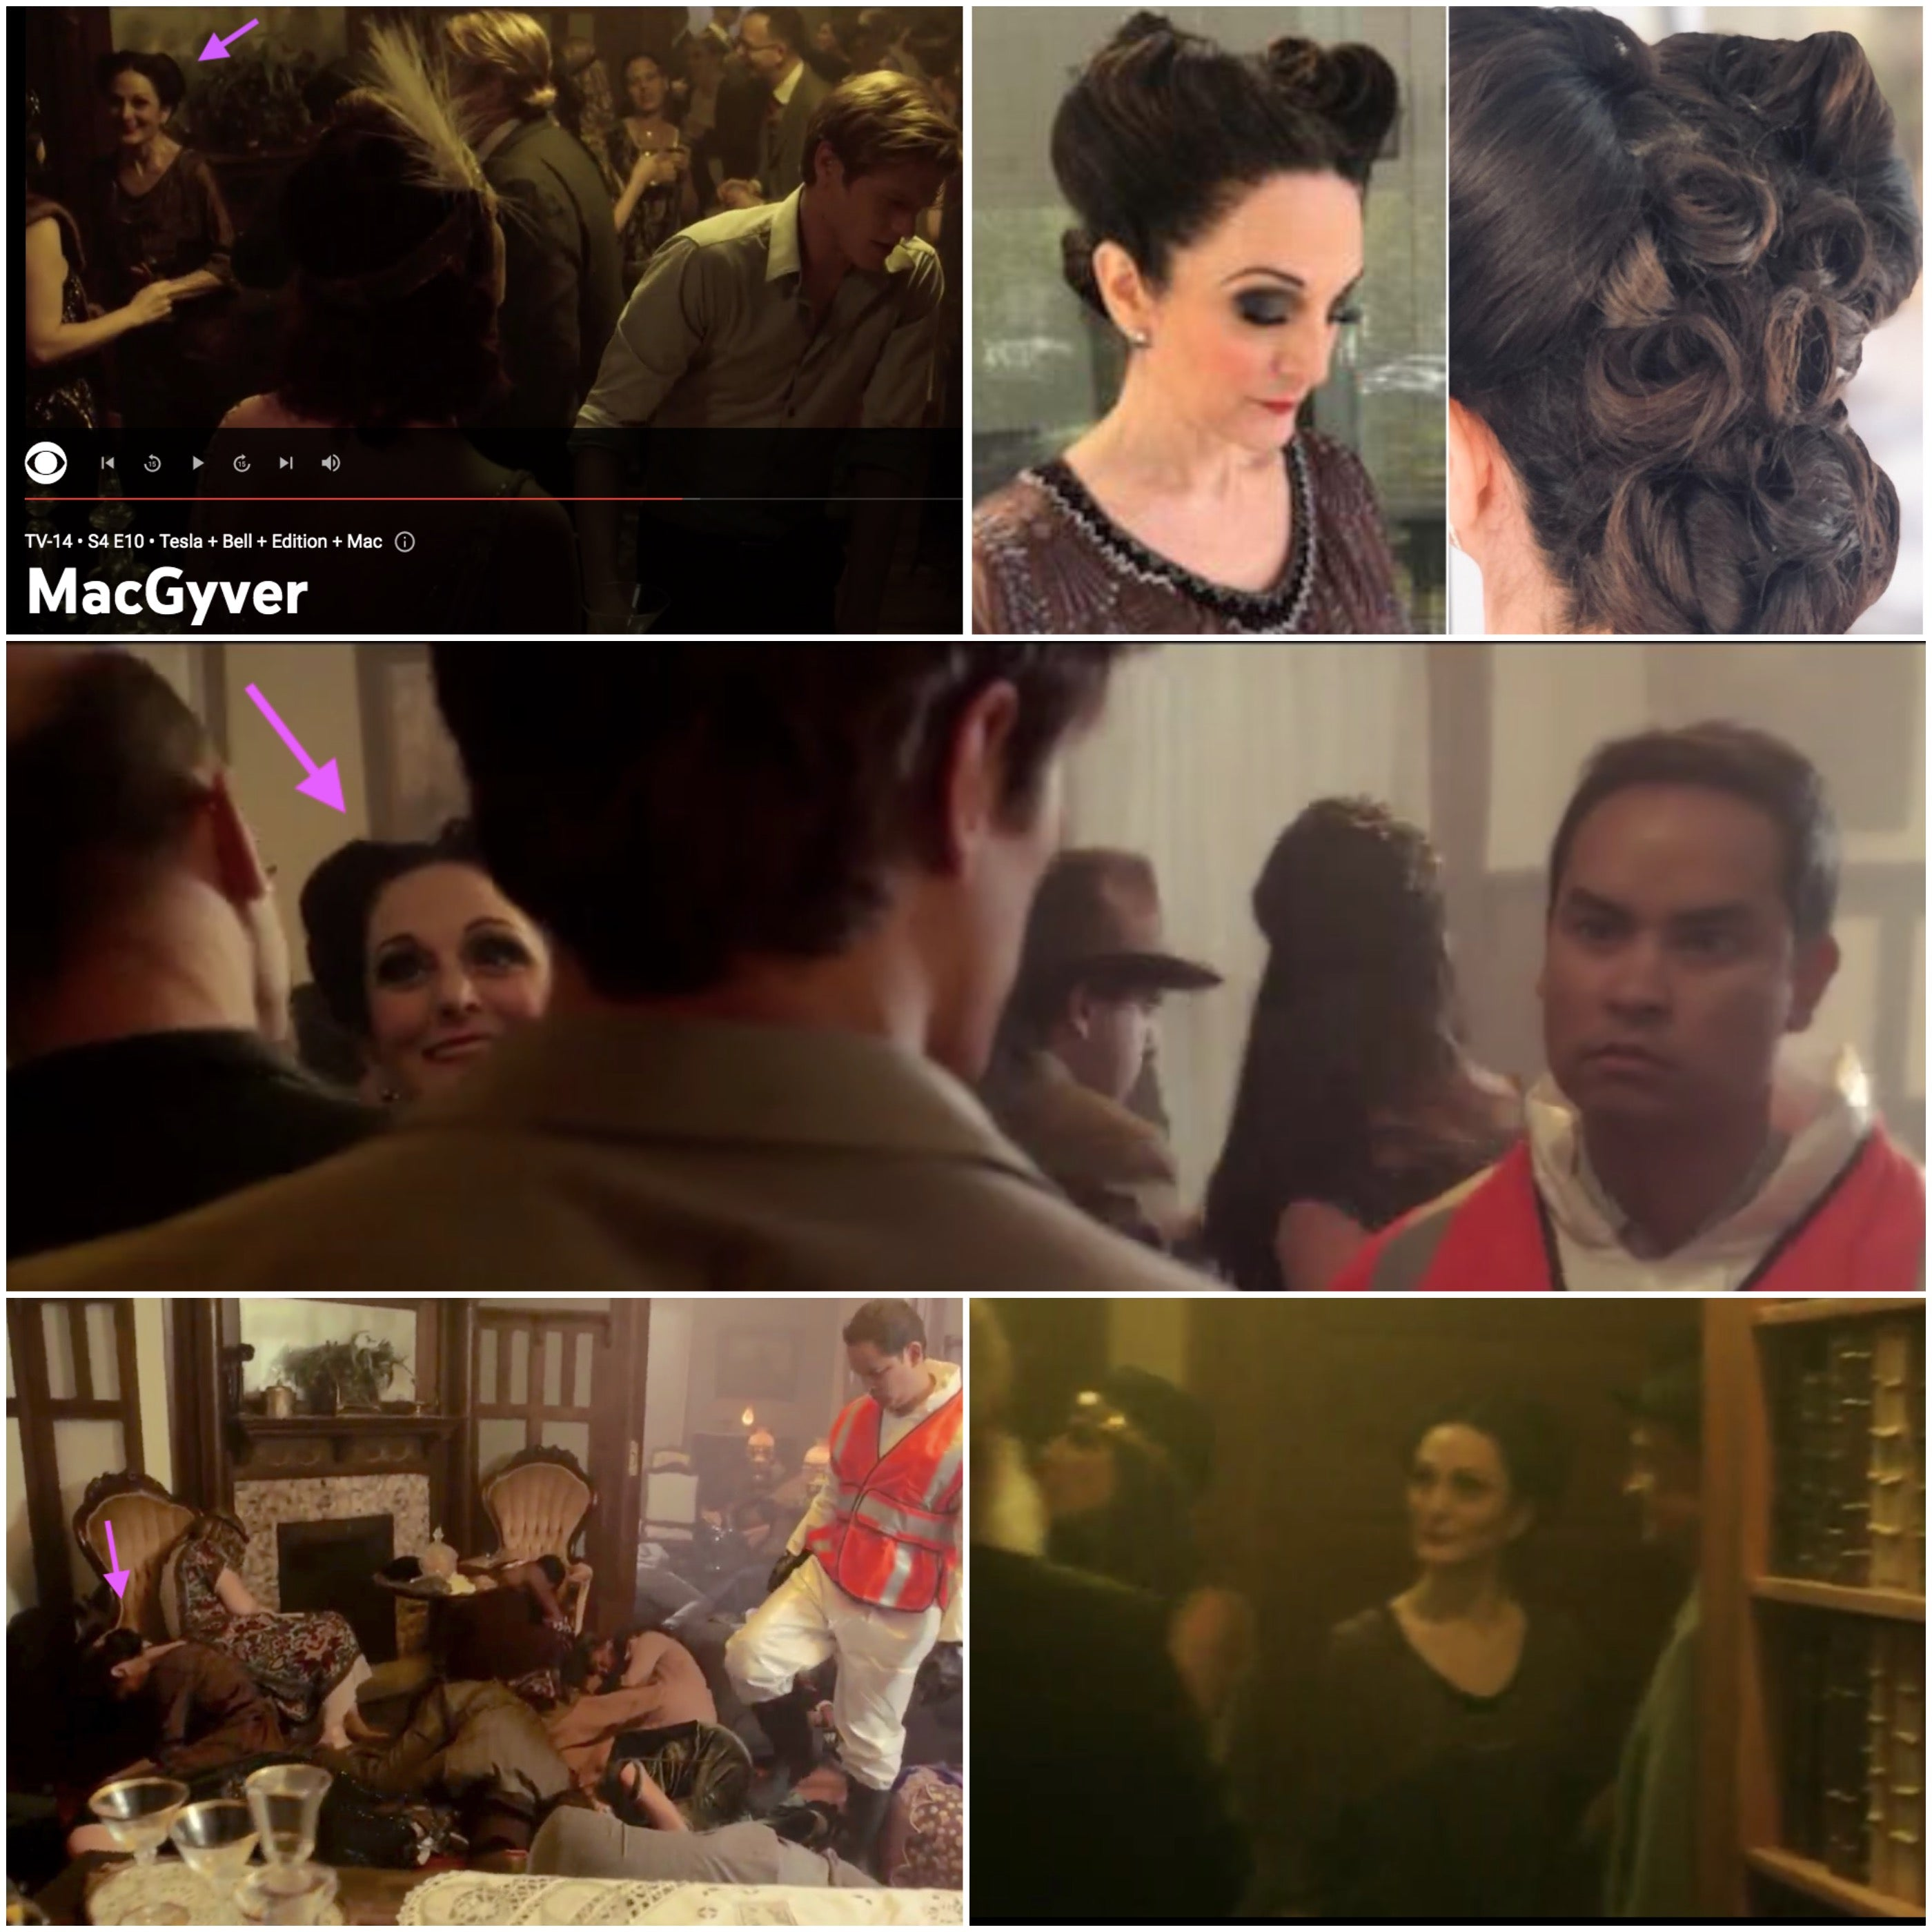 MacGyver S4 Ep10 collage